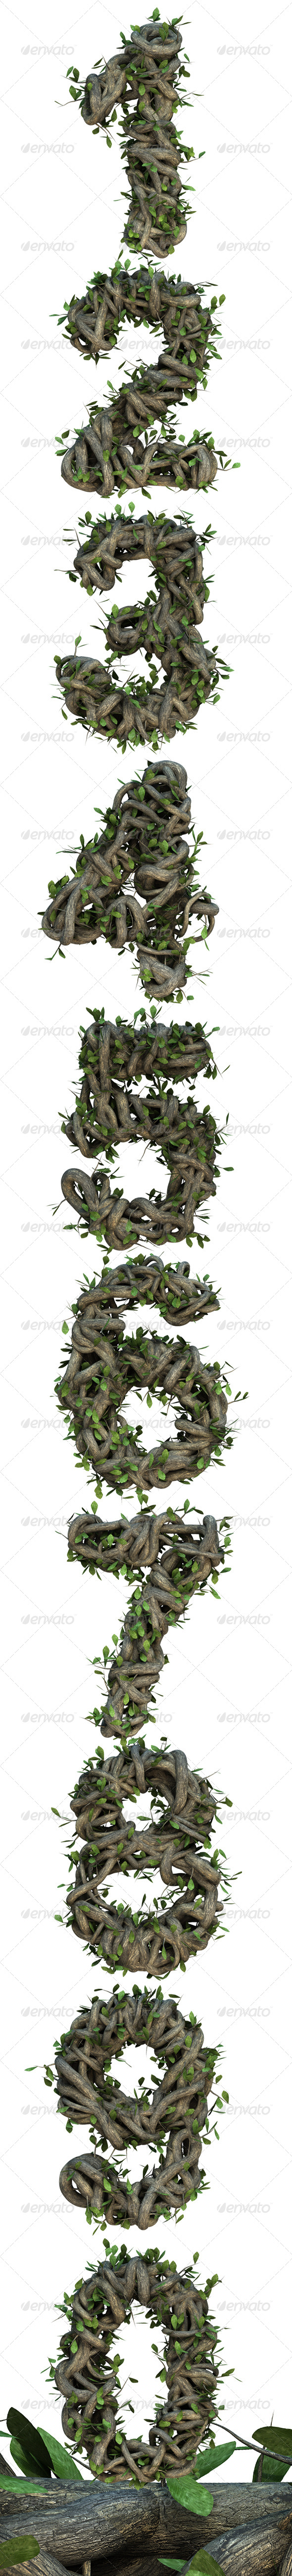 GraphicRiver Ivy Numbers 6786183